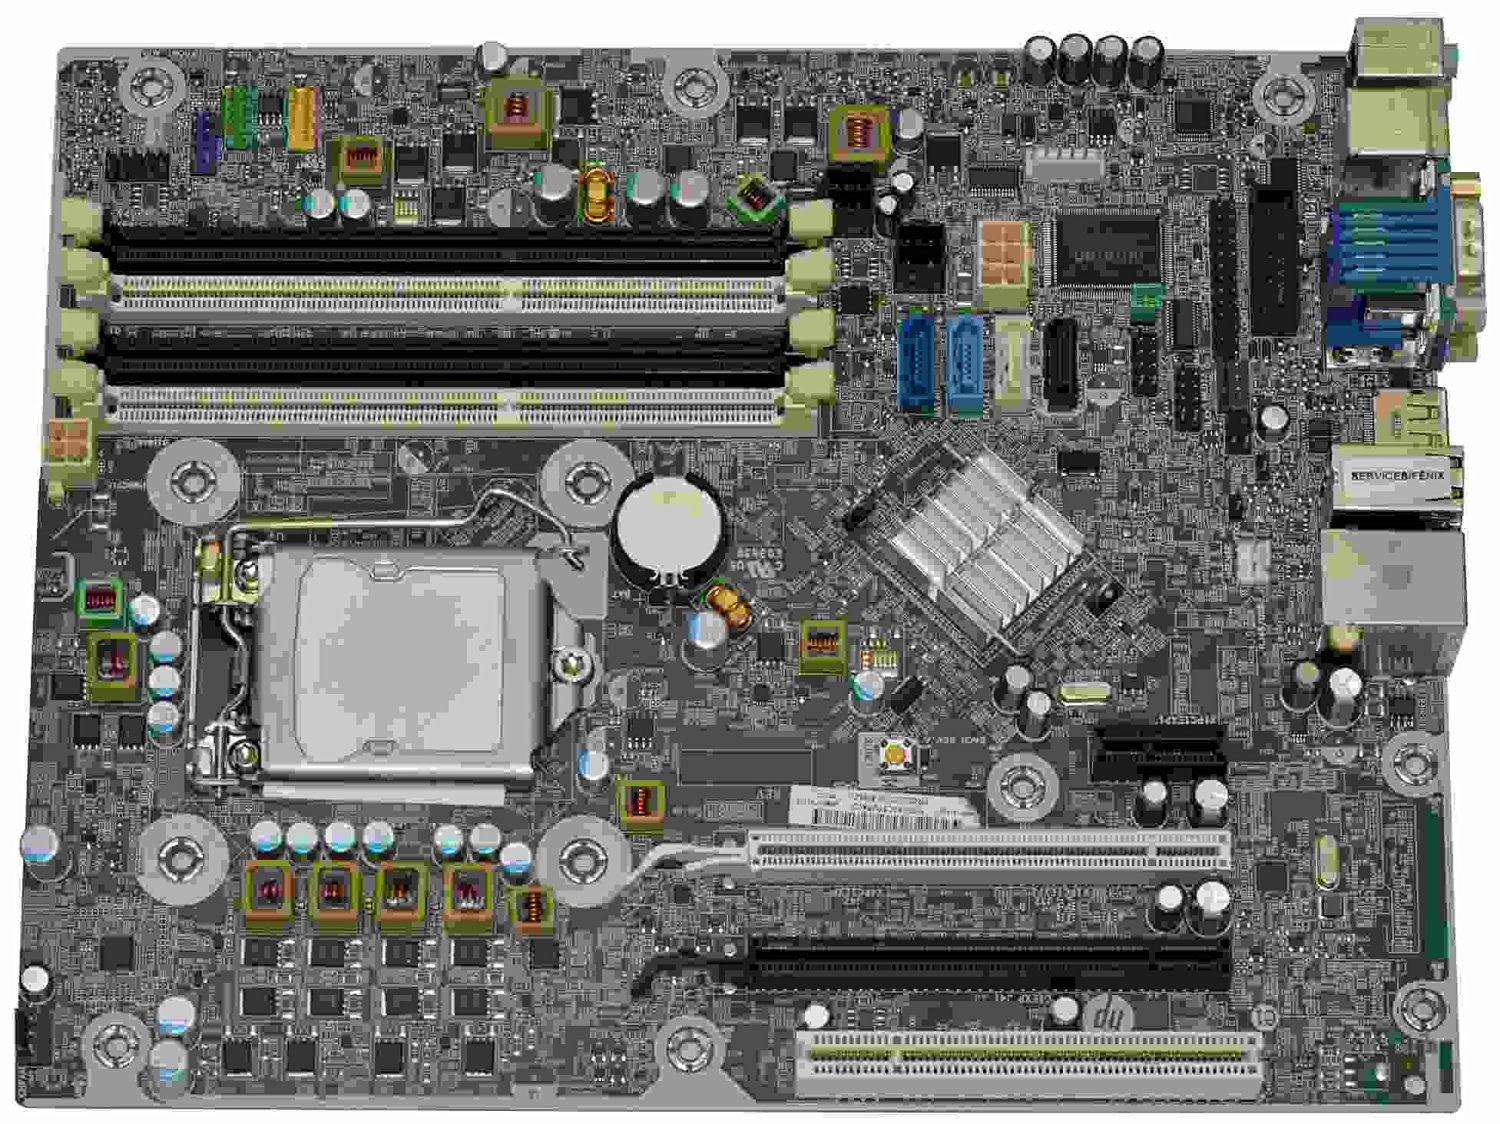 Buy 611834-001 HP Pro 6200 Compaq 8200 SFF Intel Desktop Motherboard